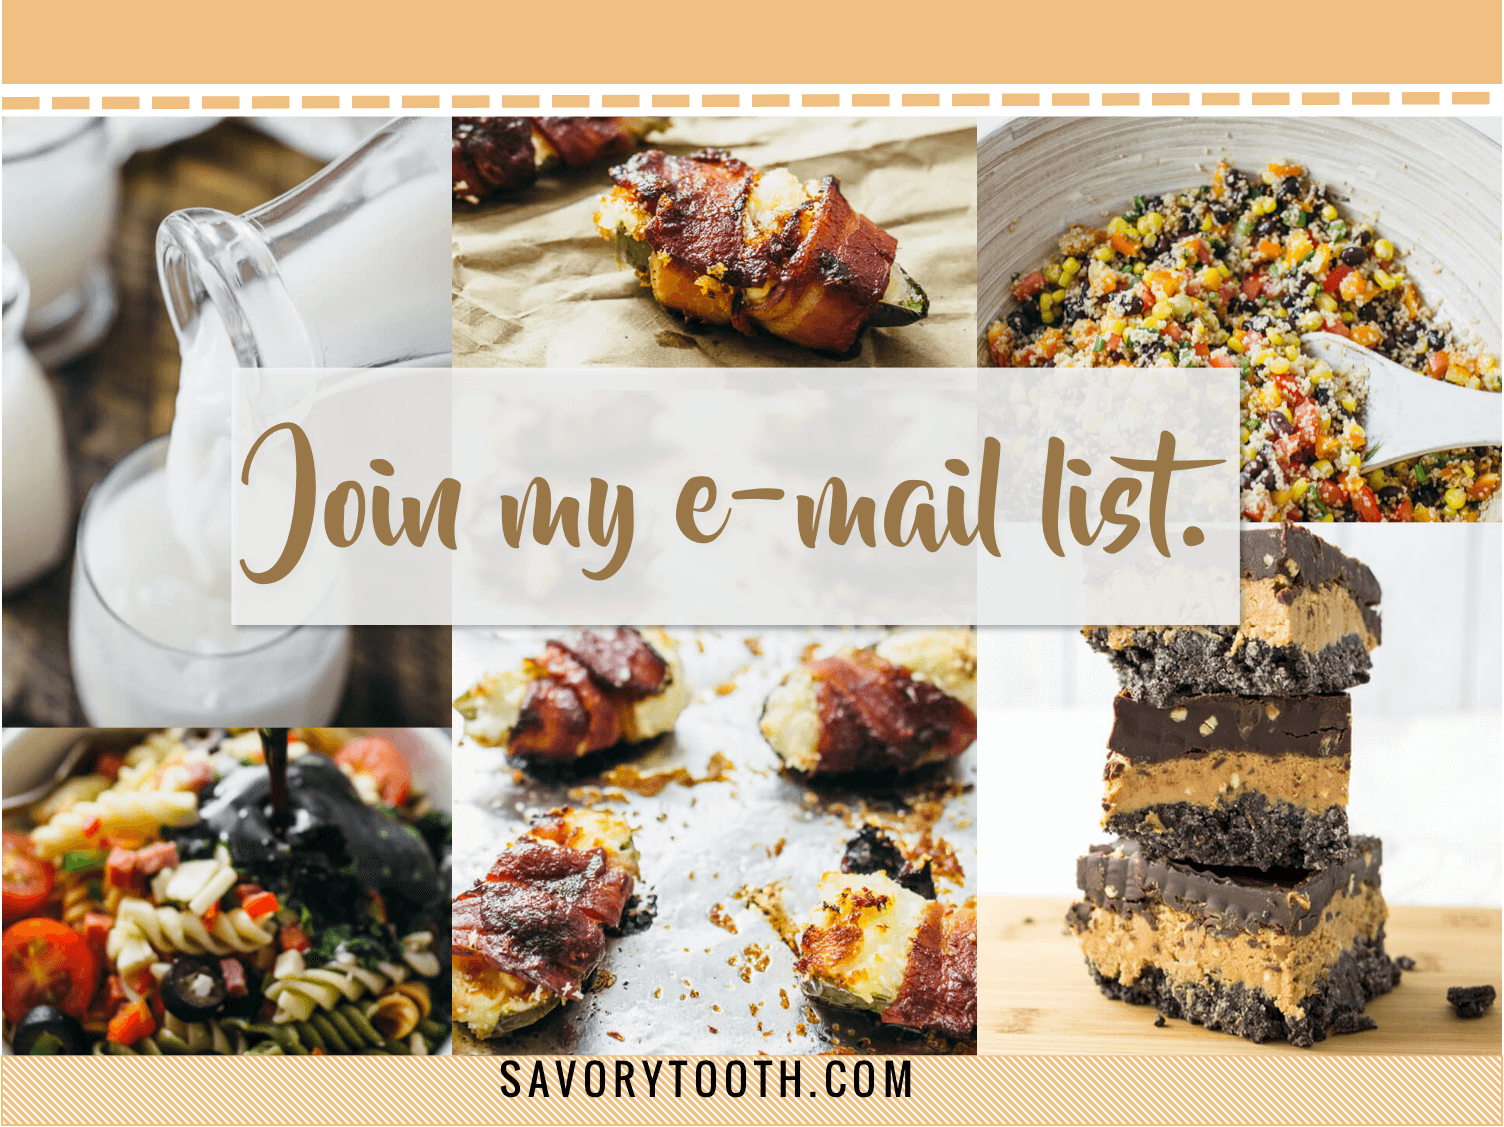 Subscribe to my email list